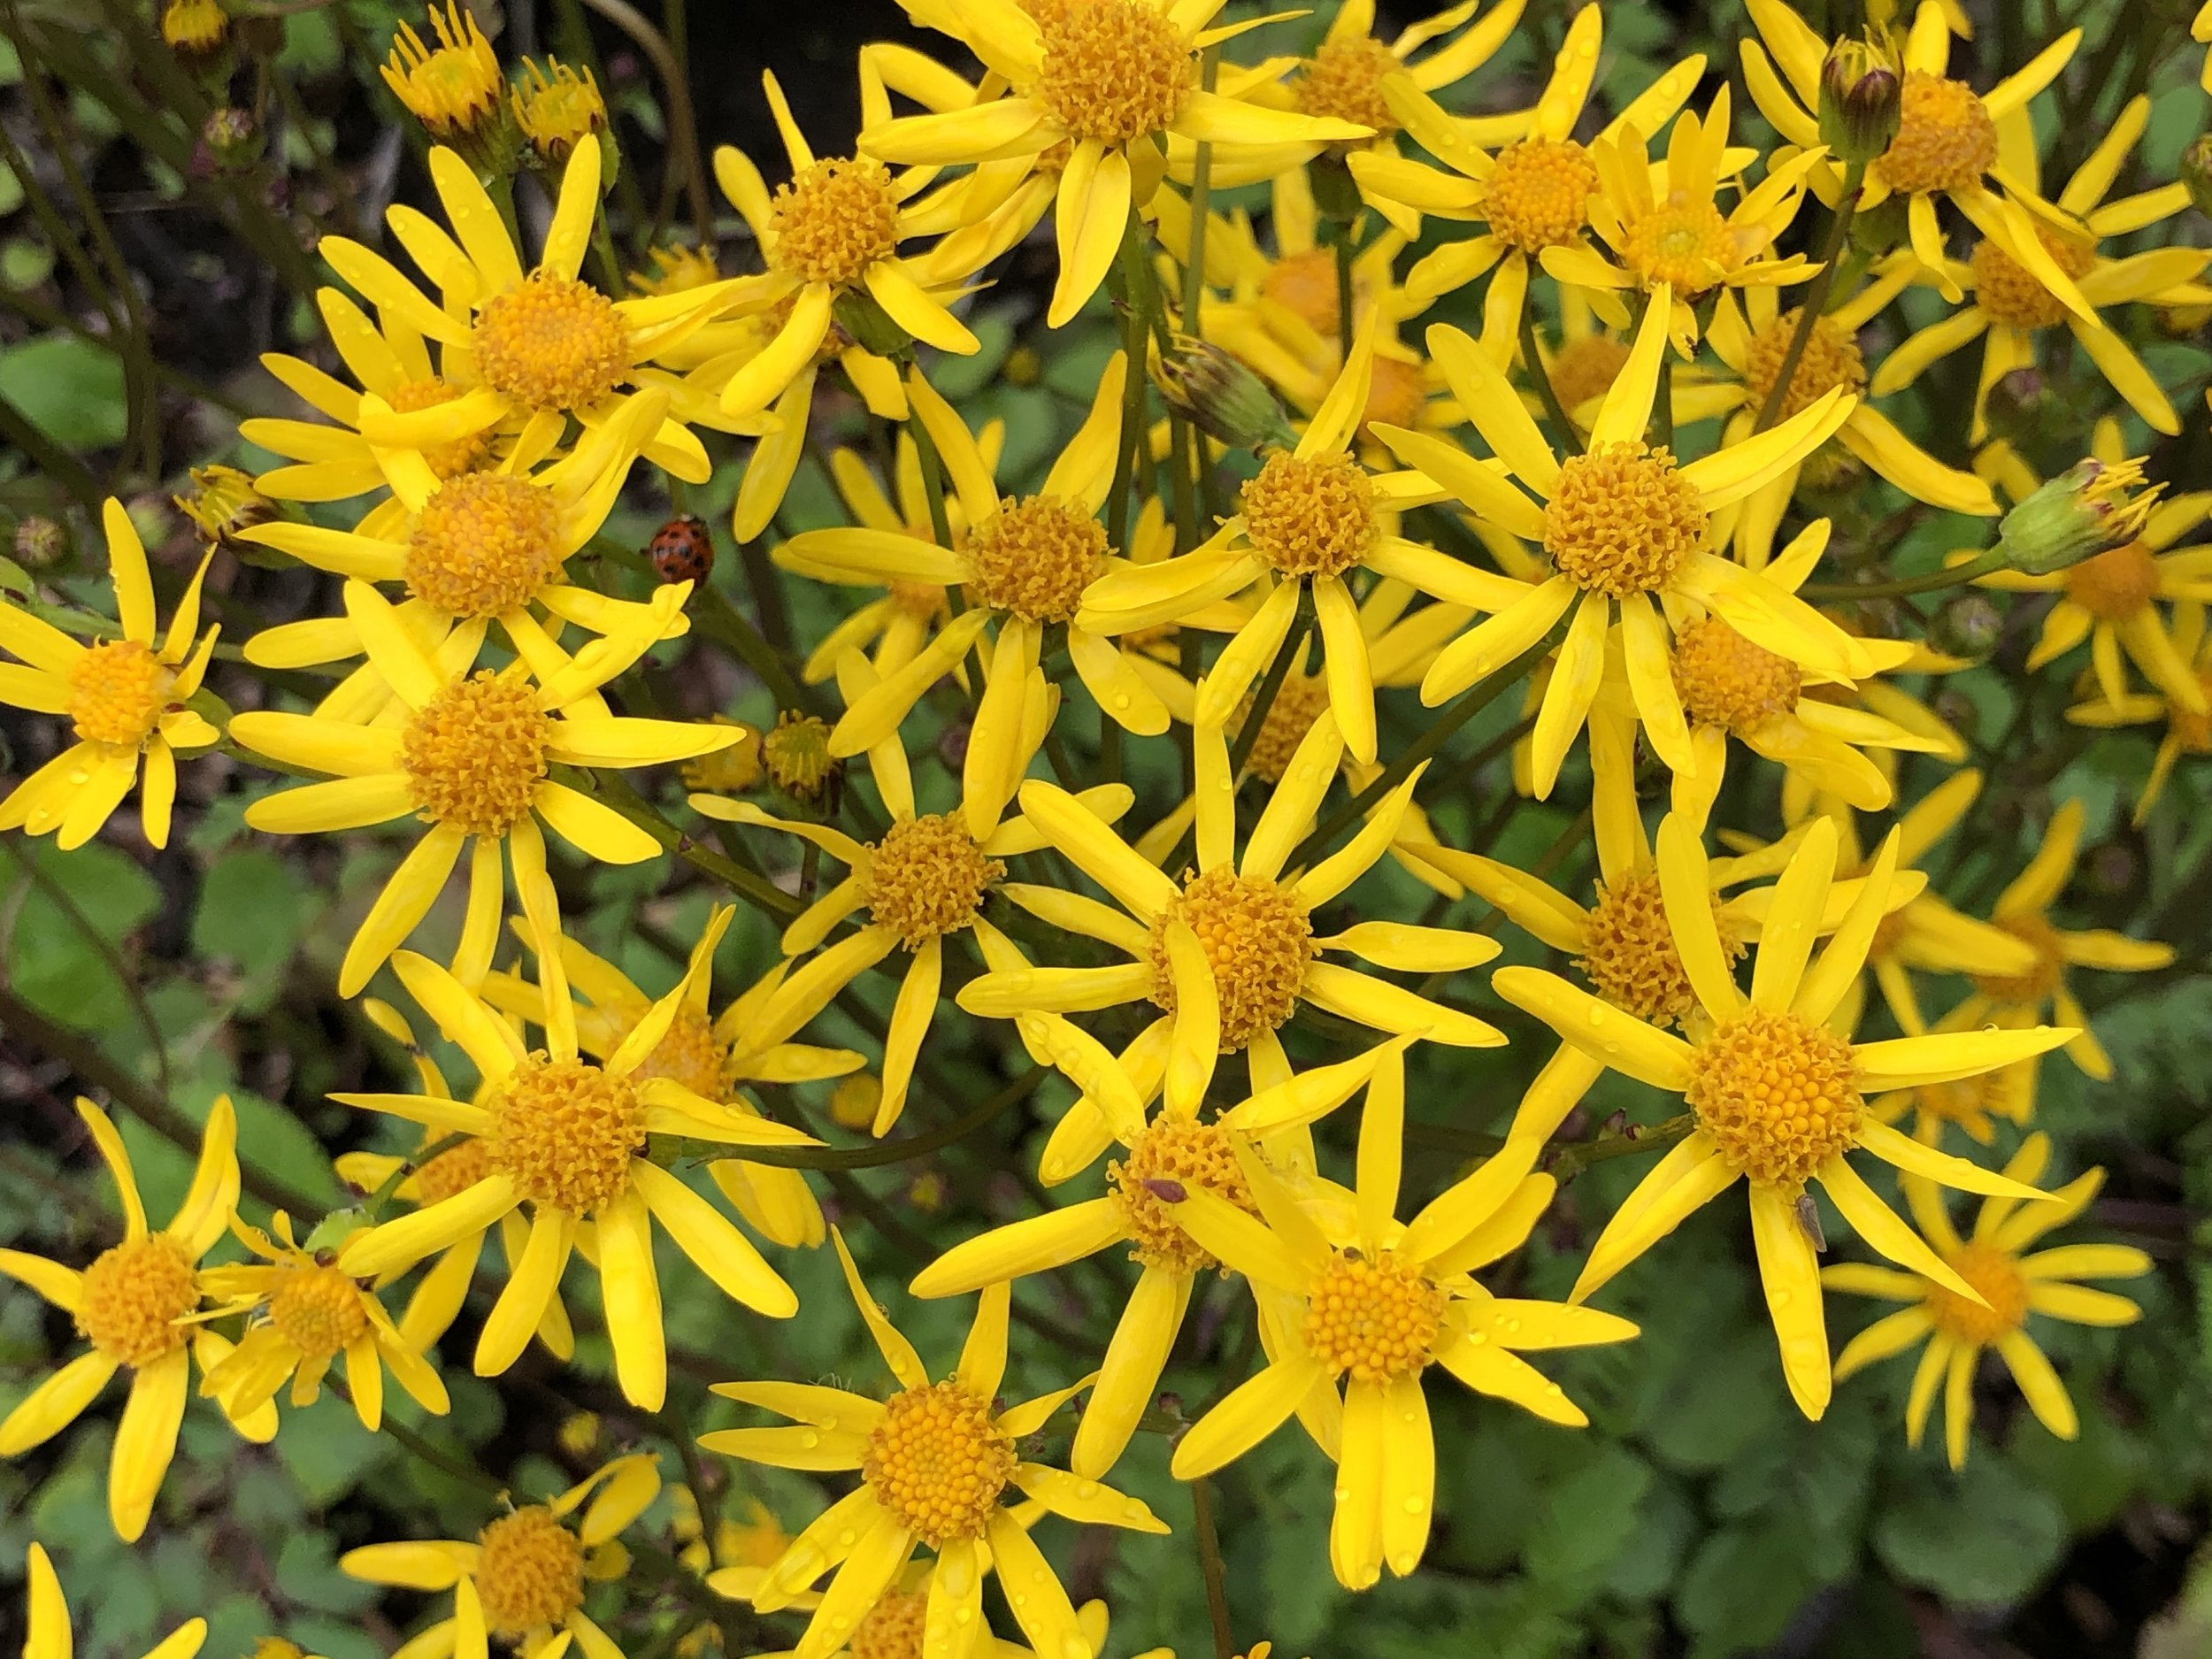 Close-up of Golden Ragwort blooms. Photo by Betsy Washington.